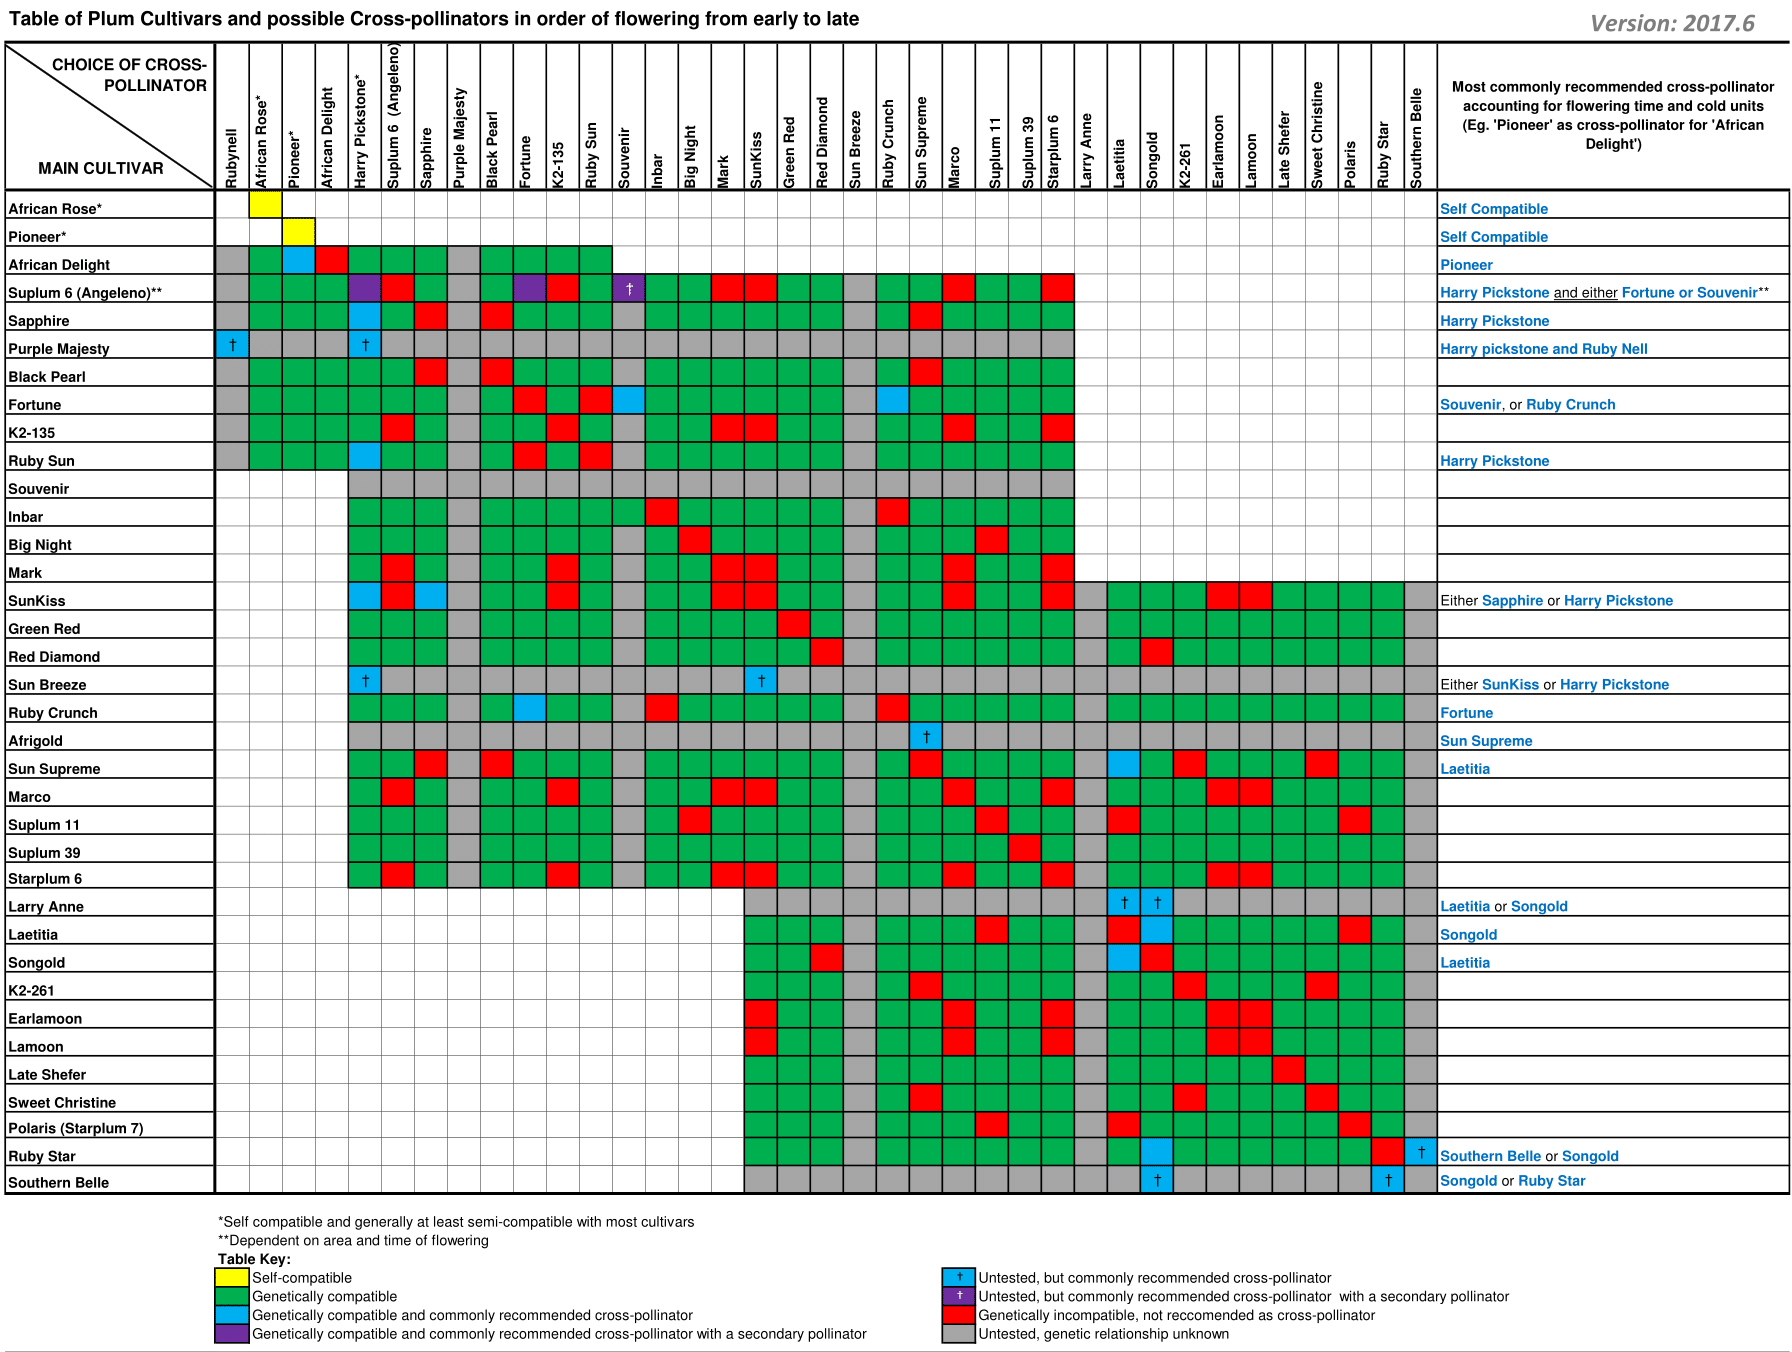 Table of Plum Cultivars and possible Cross-pollinators in order of flowering from early to late - June 2017